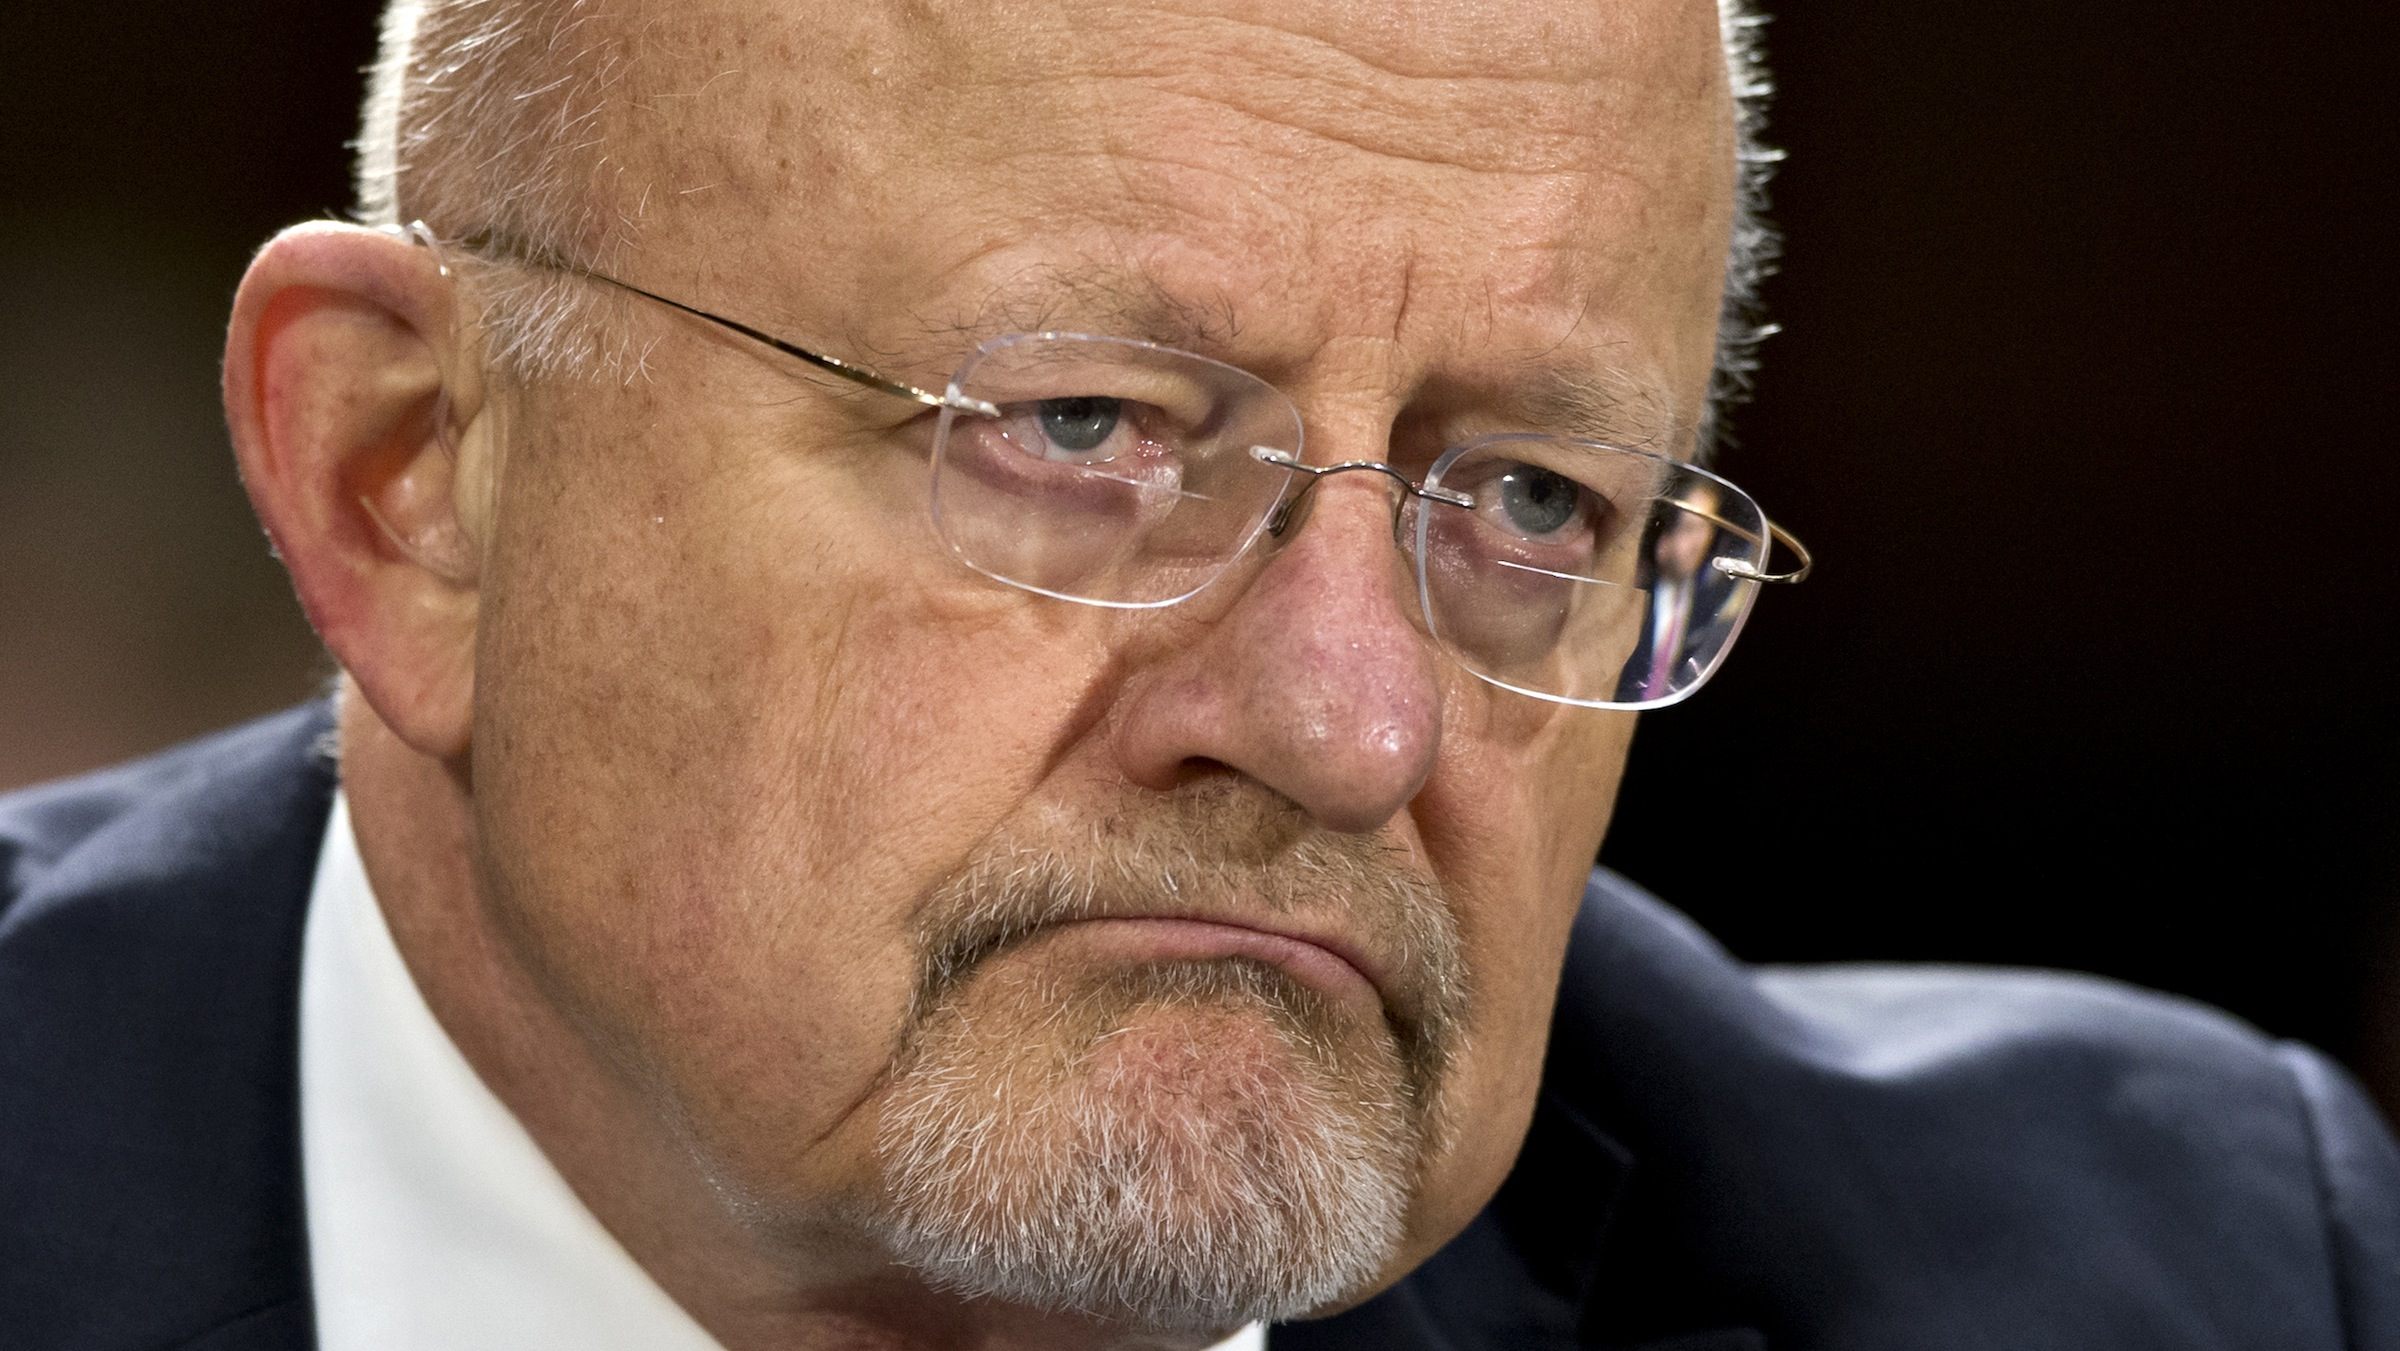 National Intelligence Director James Clapper testifies on Capitol Hill in Washington, Thursday, April 18, 2013, before the Senate Armed Services Committee hearing on the current and future threats to national security.   (AP Photo/J. Scott Applewhite)